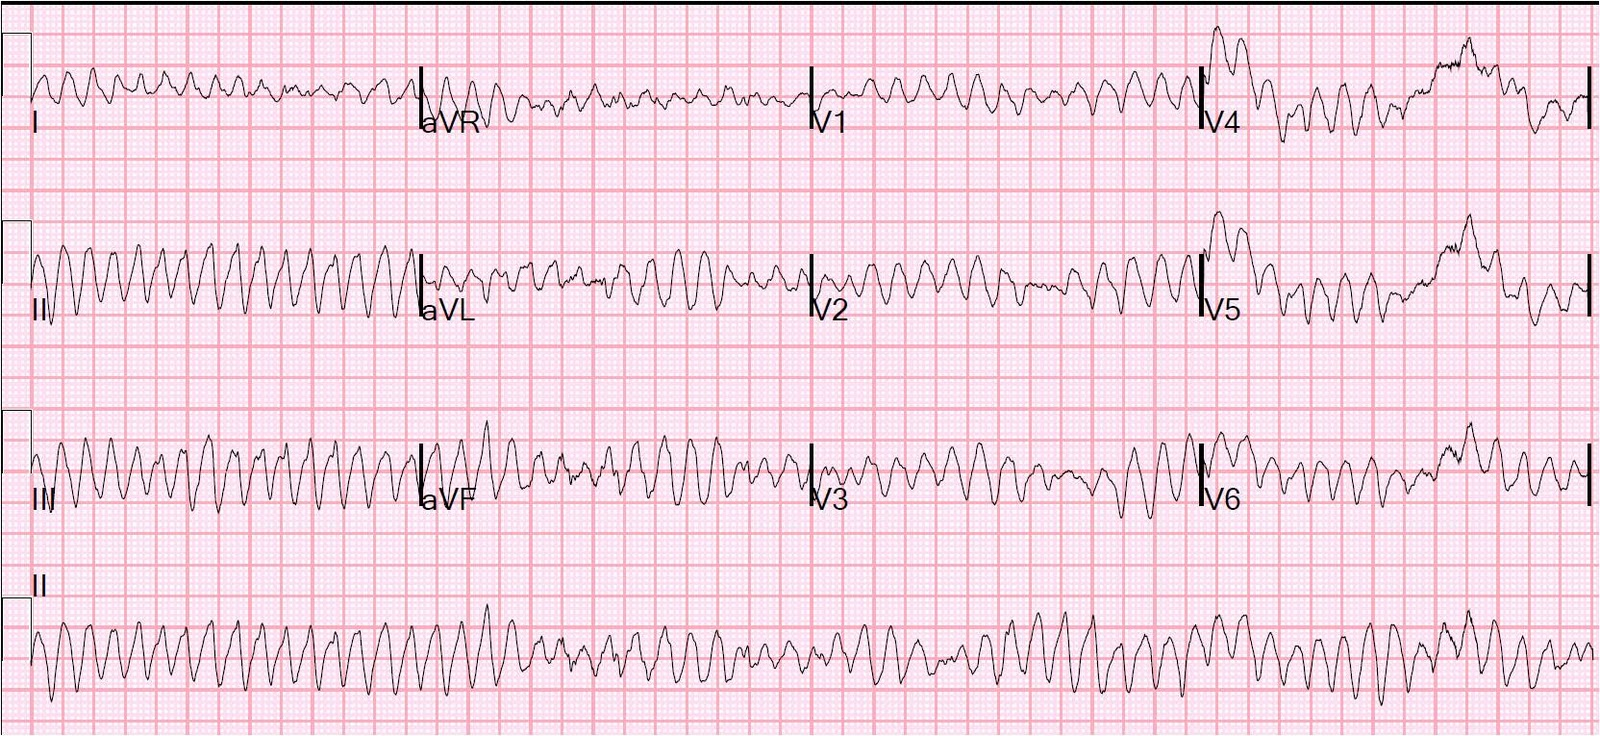 Dr  Smith s ECG Blog  Ventricular fibrillation on a 12-lead ECGVentricular Fibrillation Ecg